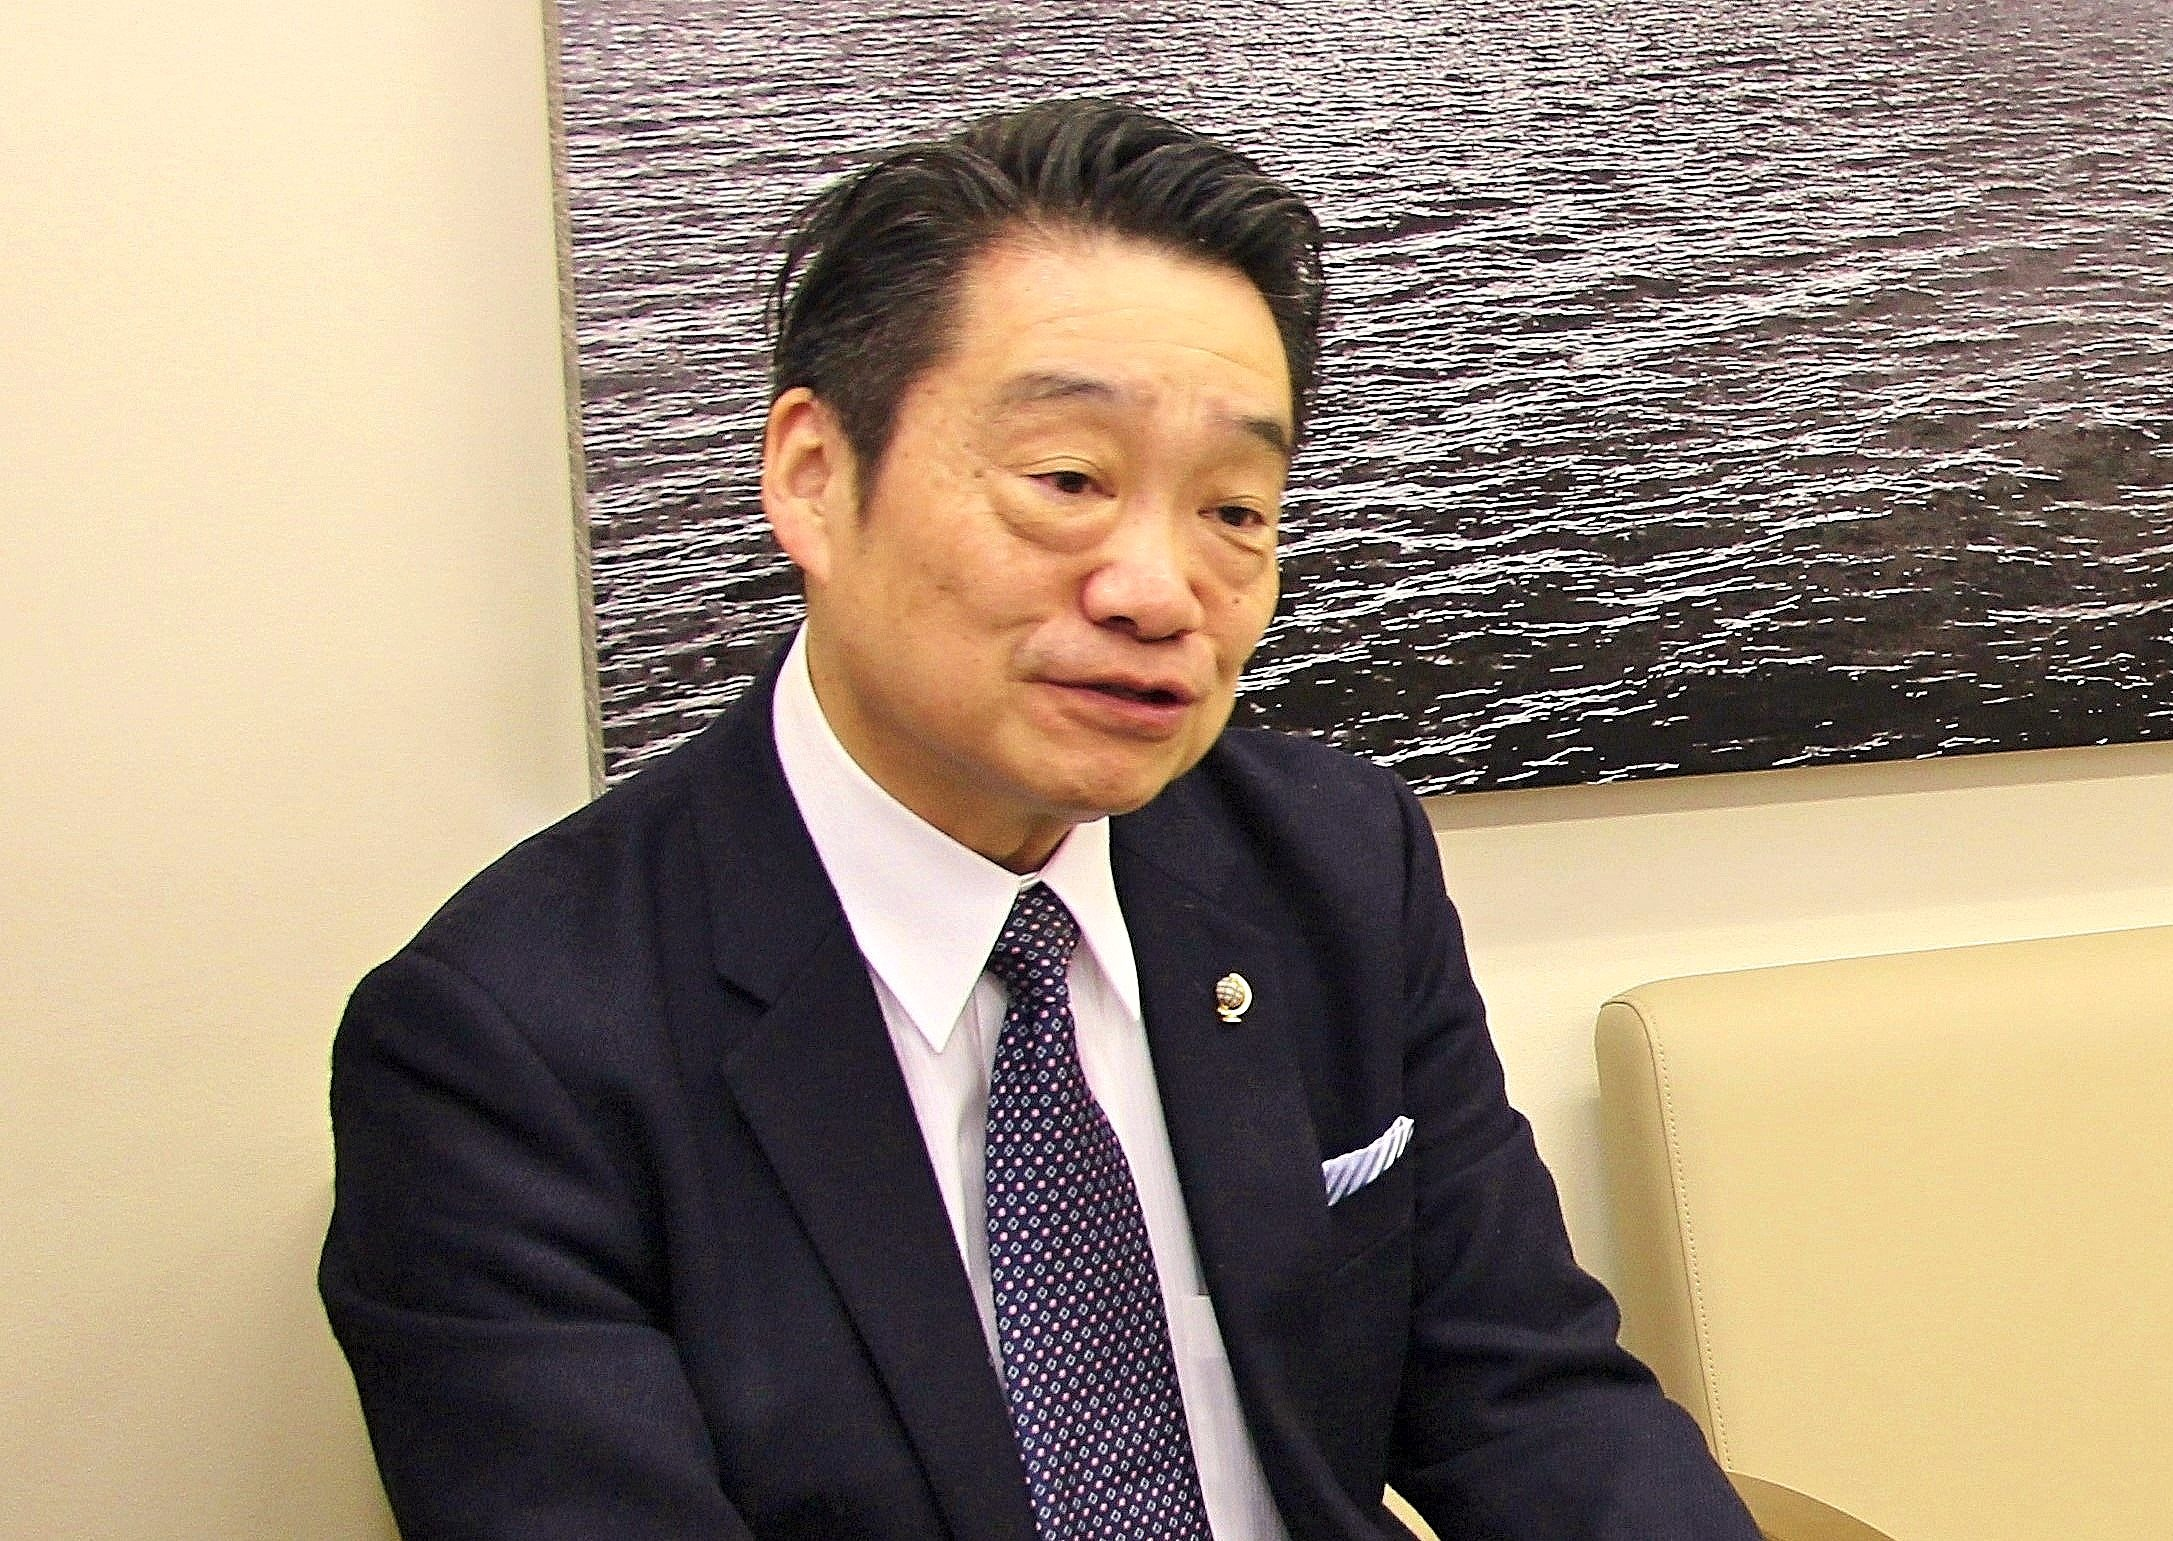 Interview: APIC Director and Outside Auditor of Ajinomoto, Hiroshi Murakami